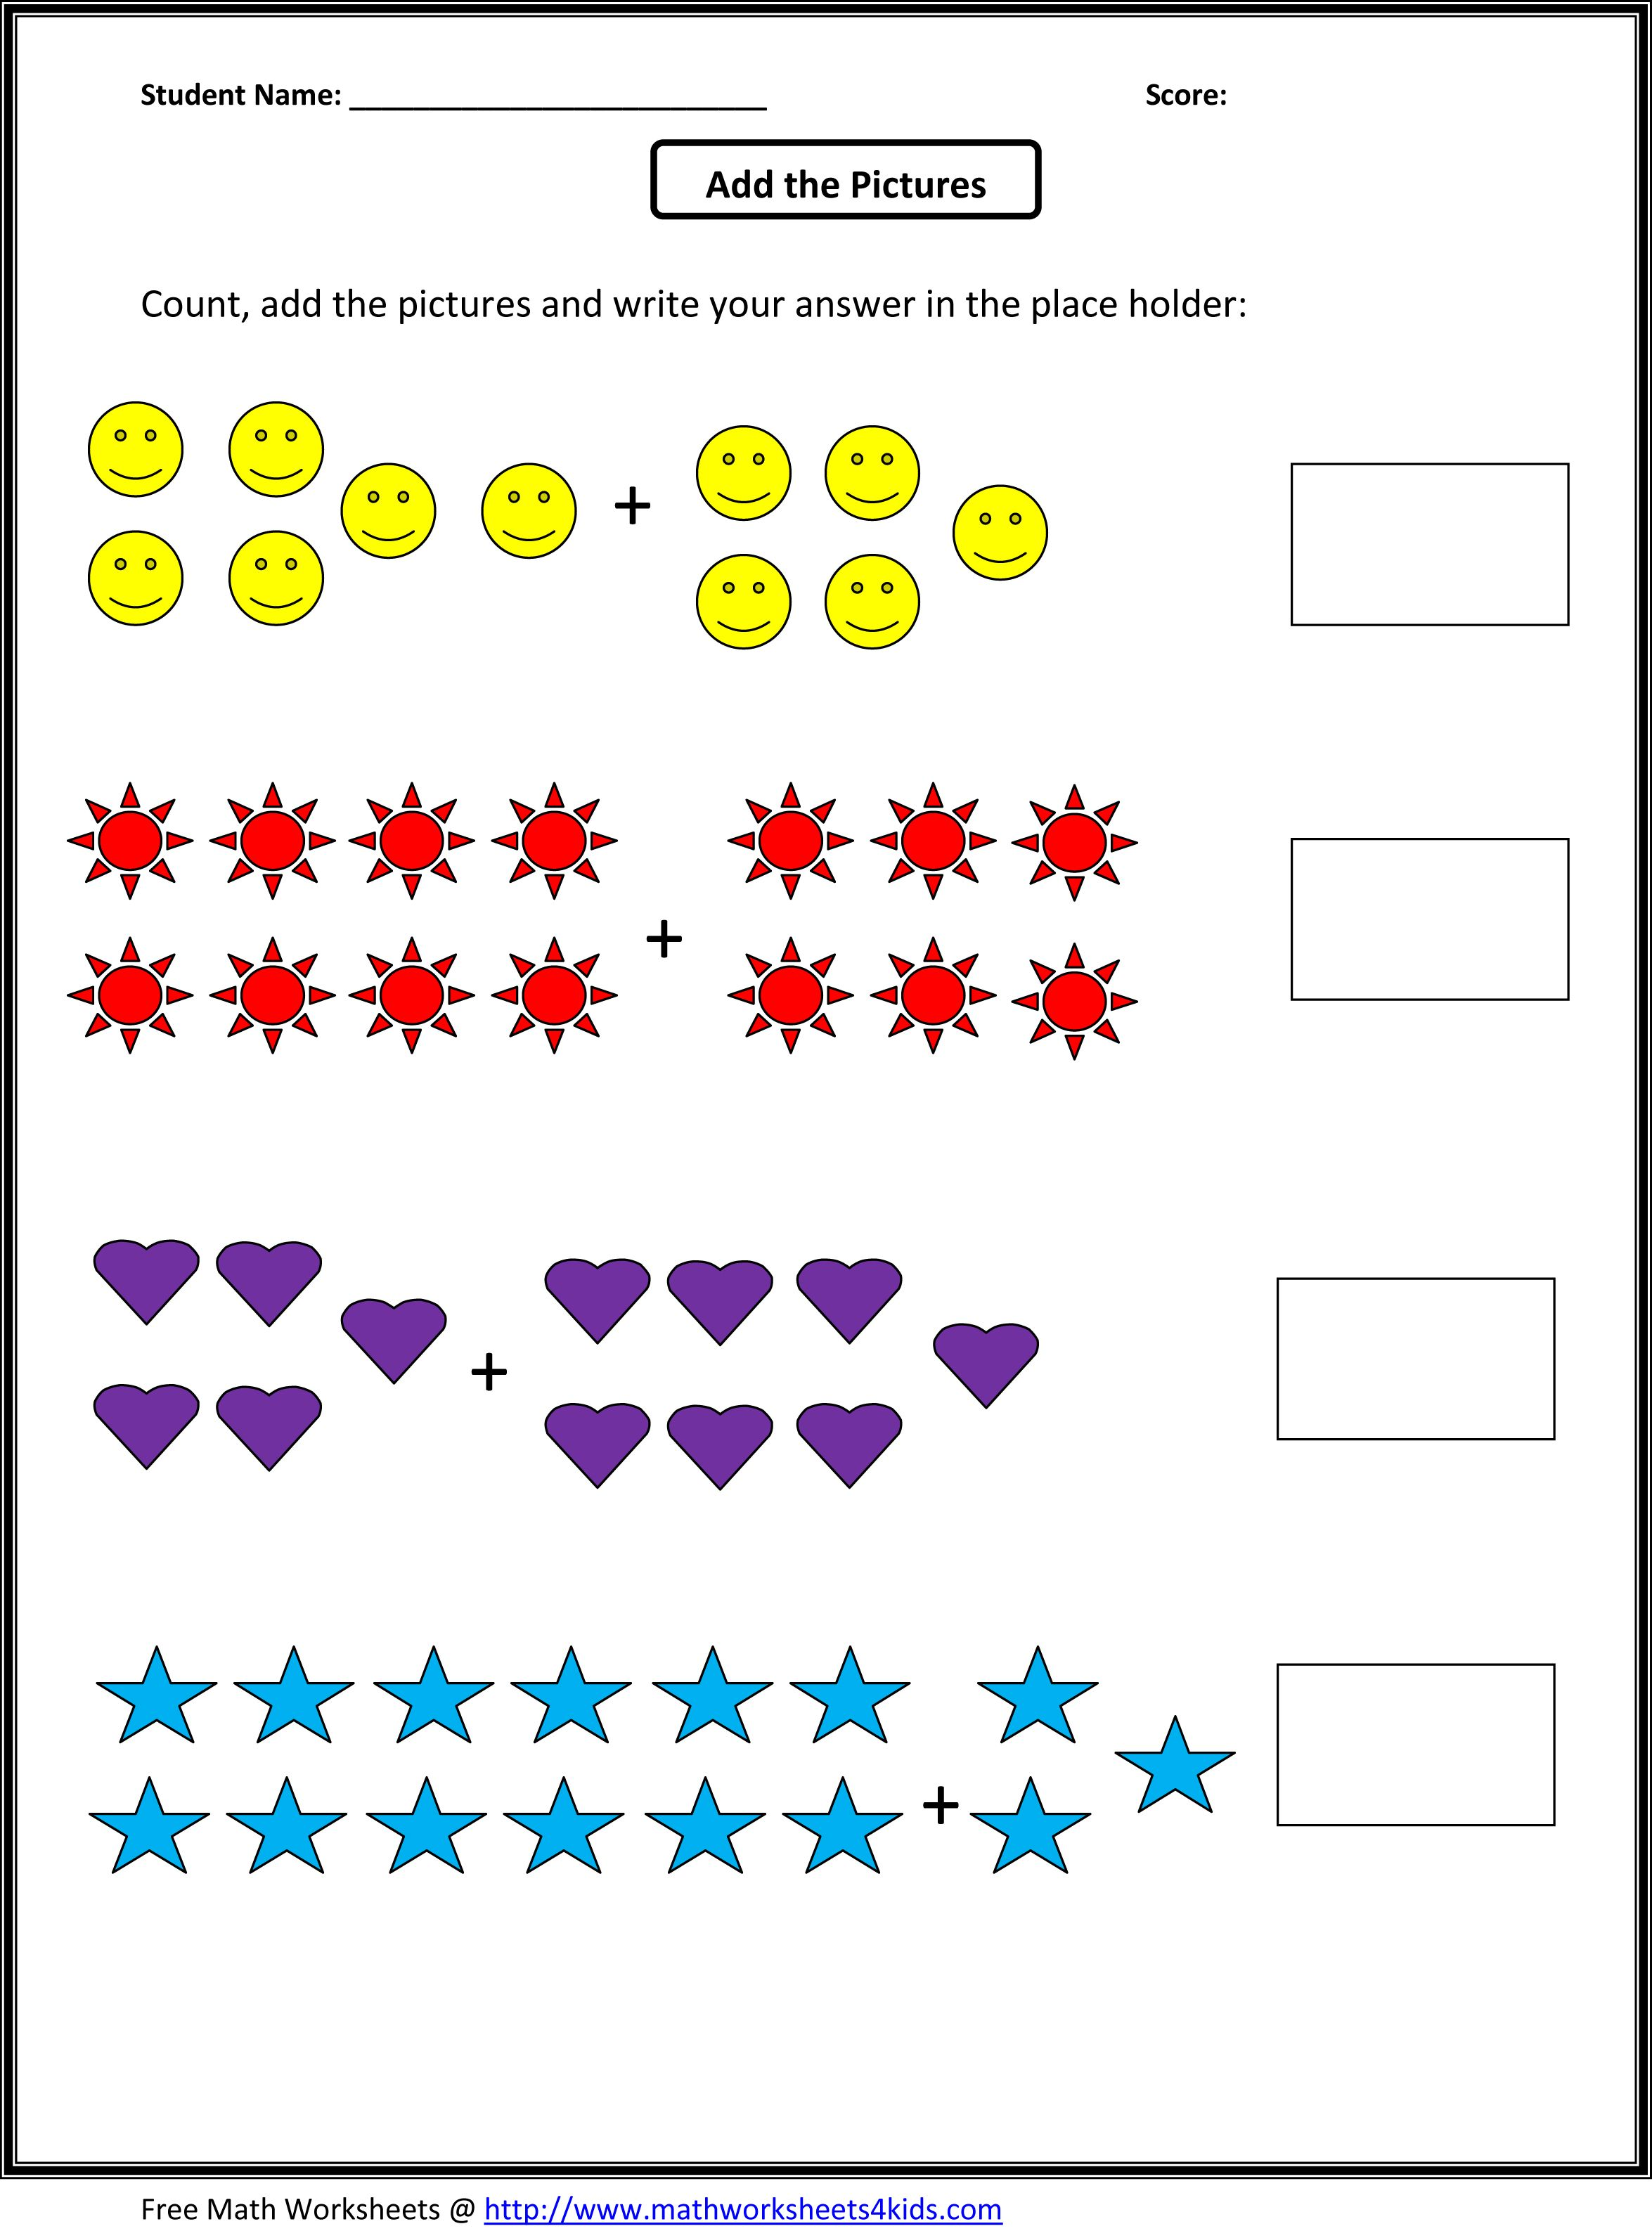 photograph relating to Printable Mathematics Worksheets for Grade 1 called quality 1 addition math worksheets Initial Quality Math